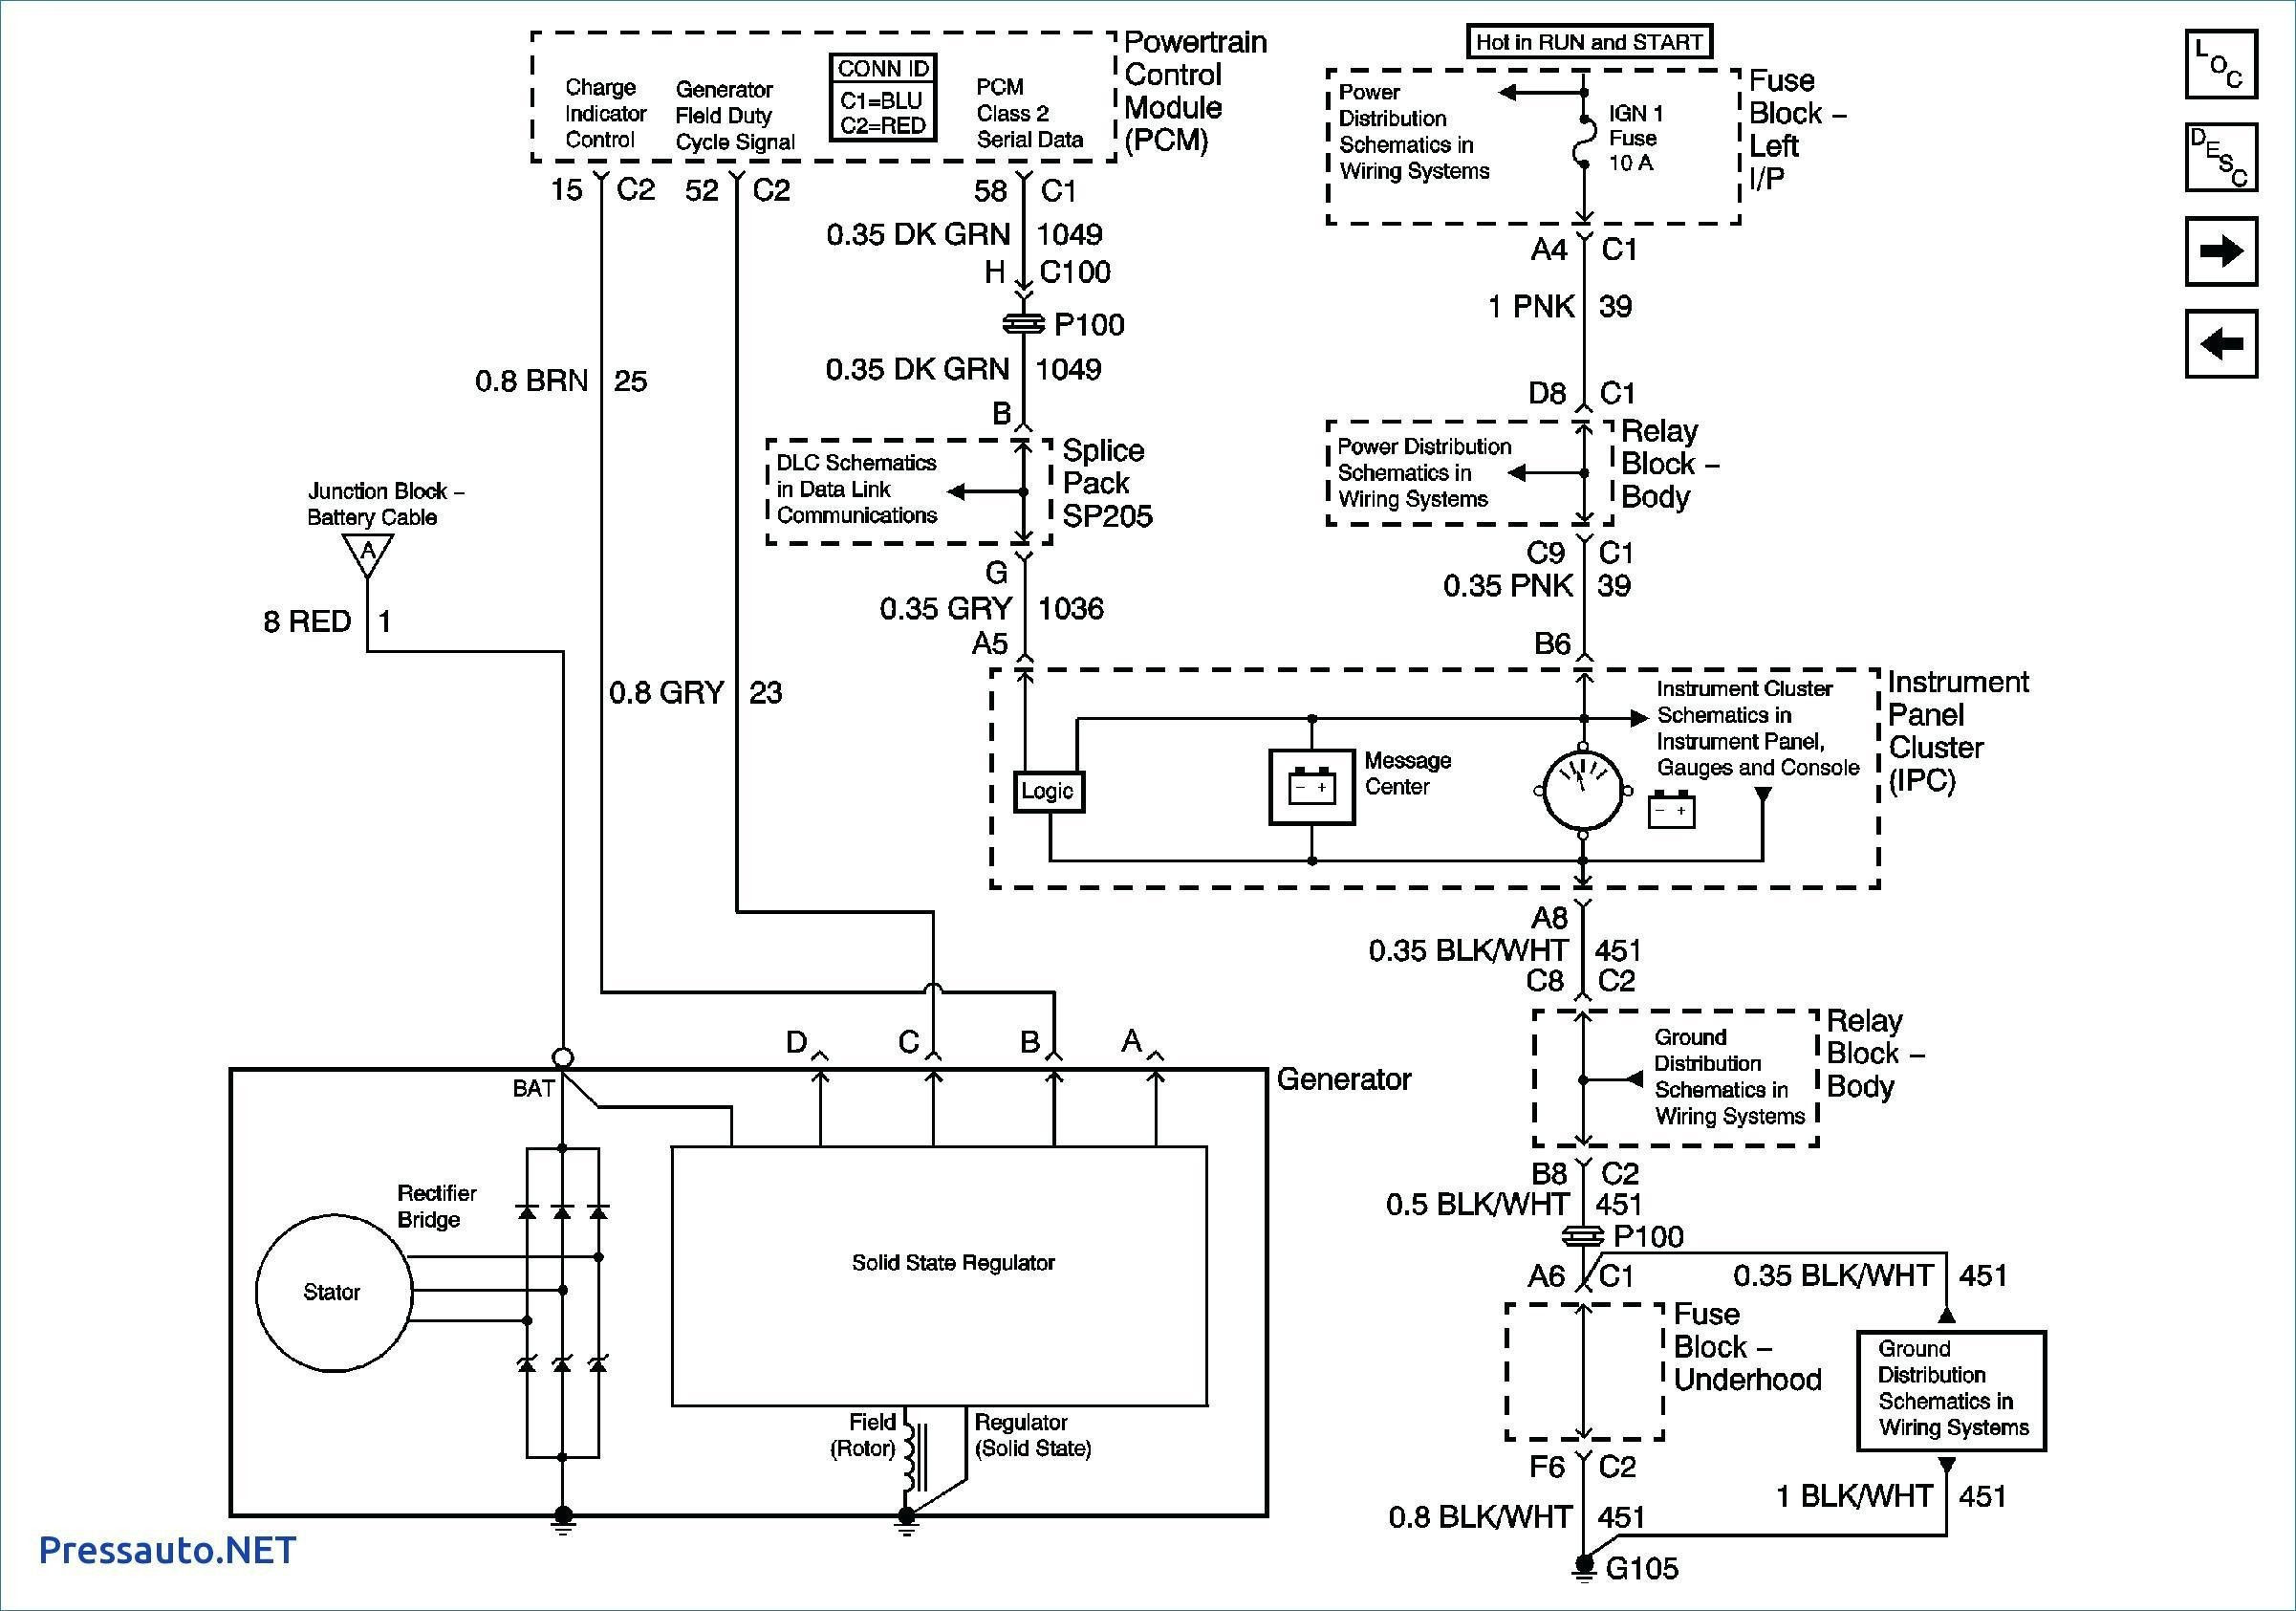 Car Powertrain Diagram Auto Wiring Diagram Symbols Save Simple Vehicle Wiring Diagram Of Car Powertrain Diagram